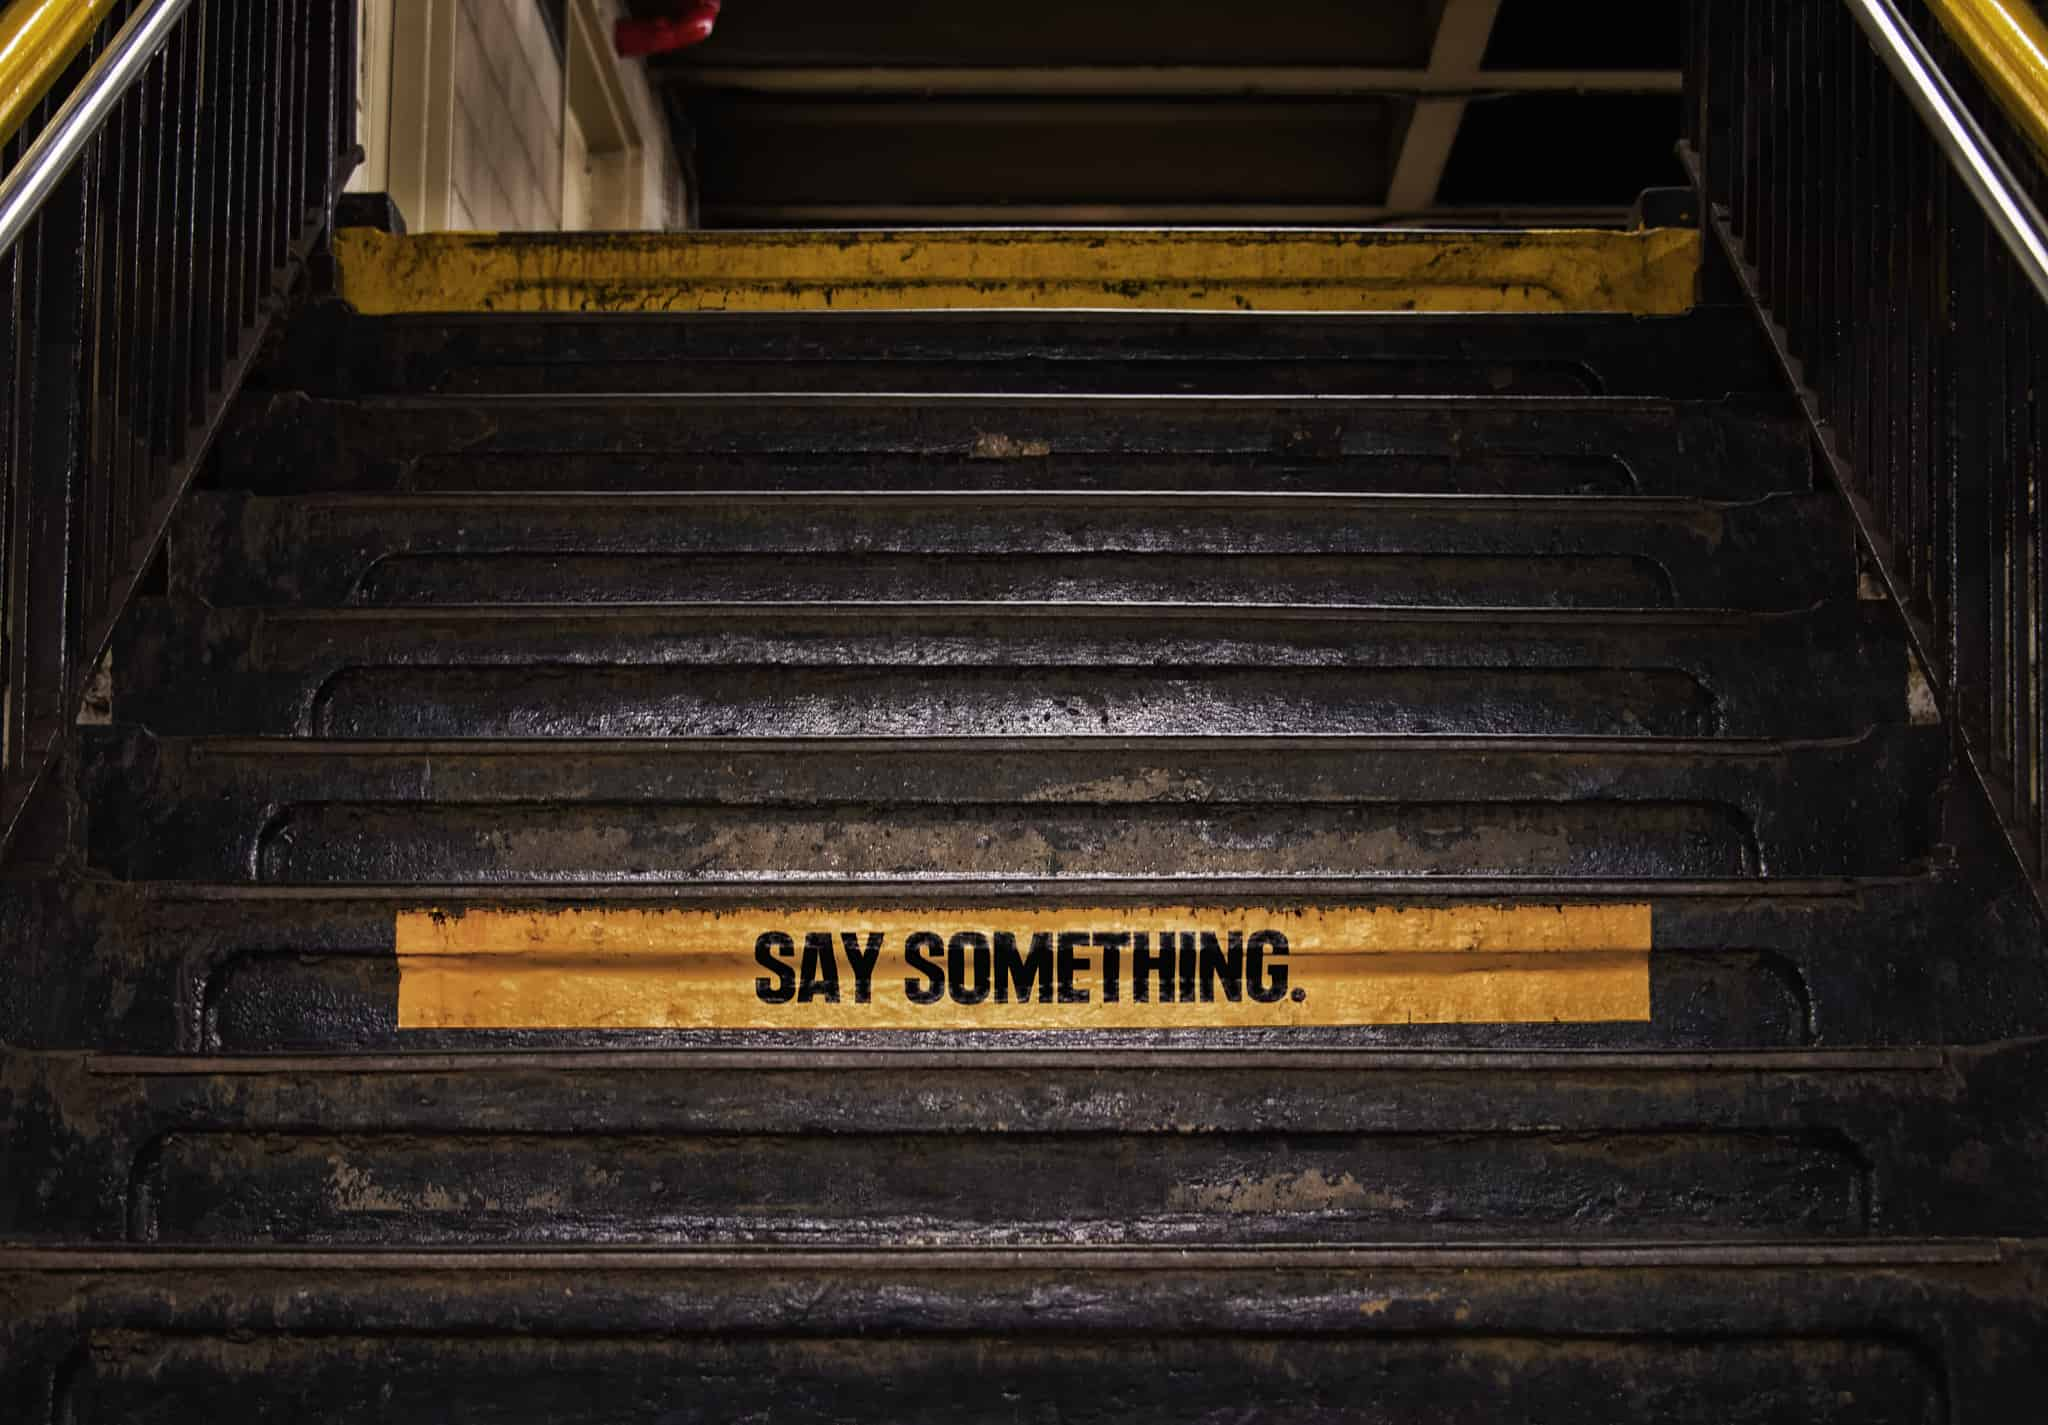 Security warning on the stairs in the NYC subway. (flickr/cc Russ Allison Loar)